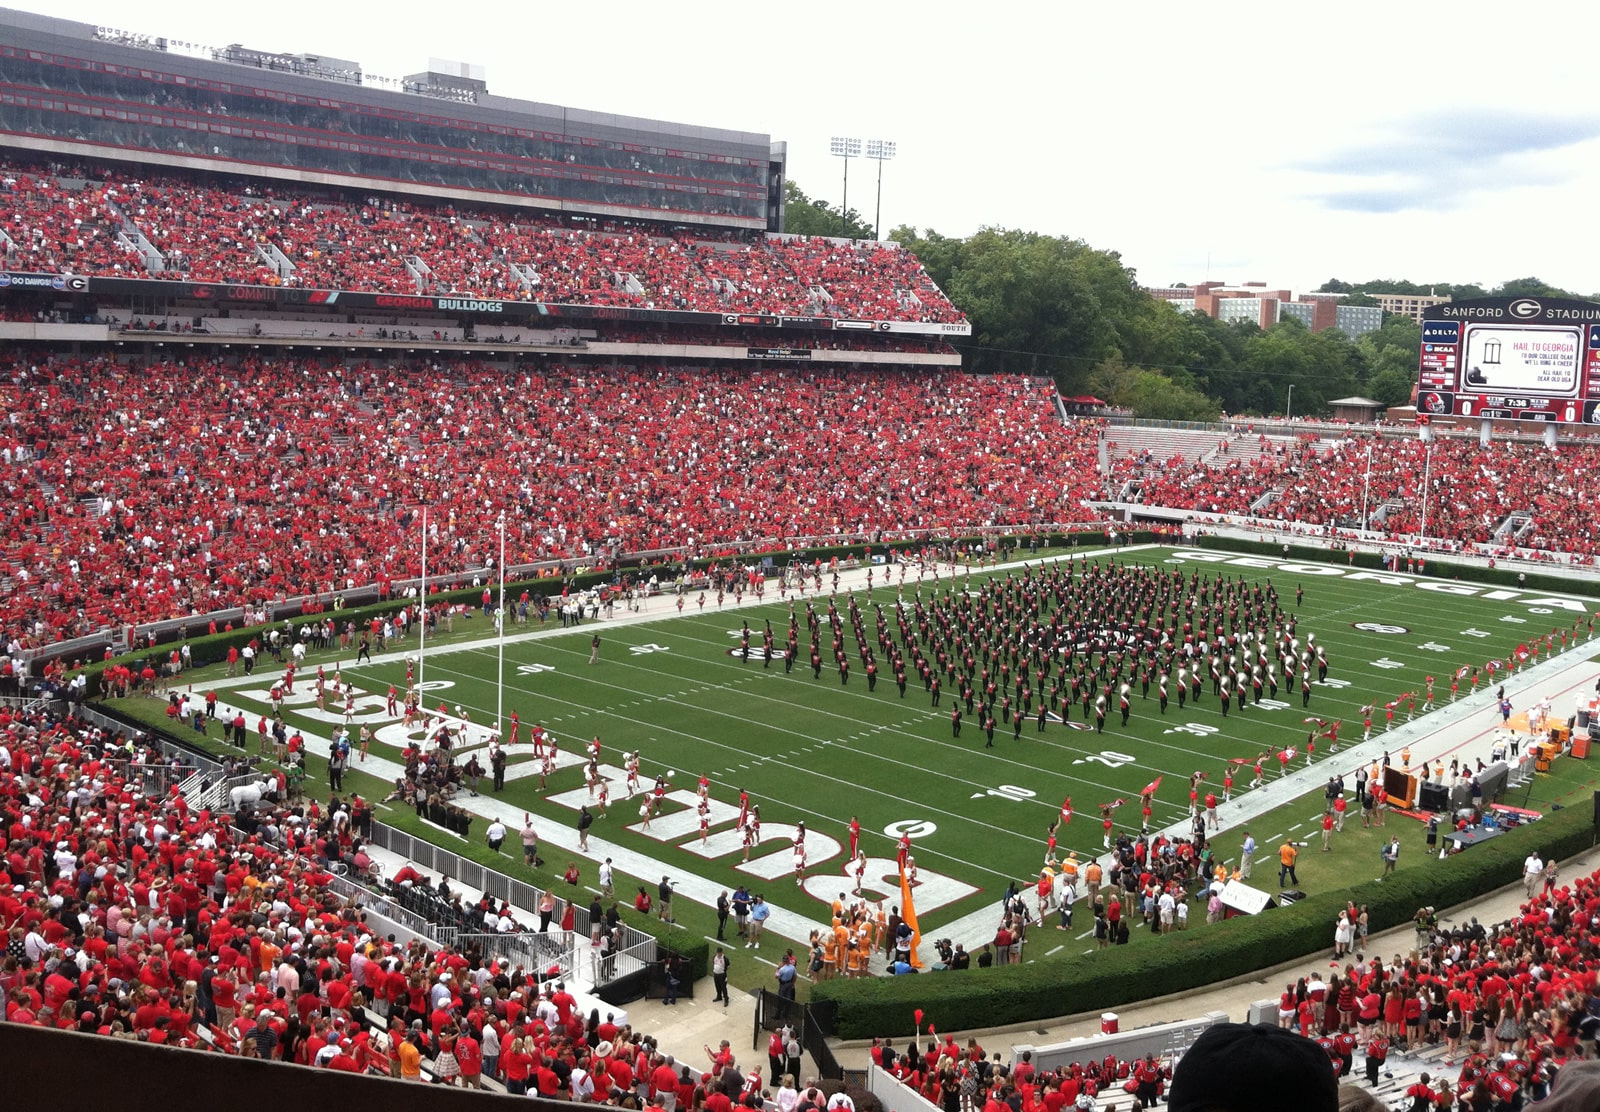 The UGA Redcoat Band performs at halftime.